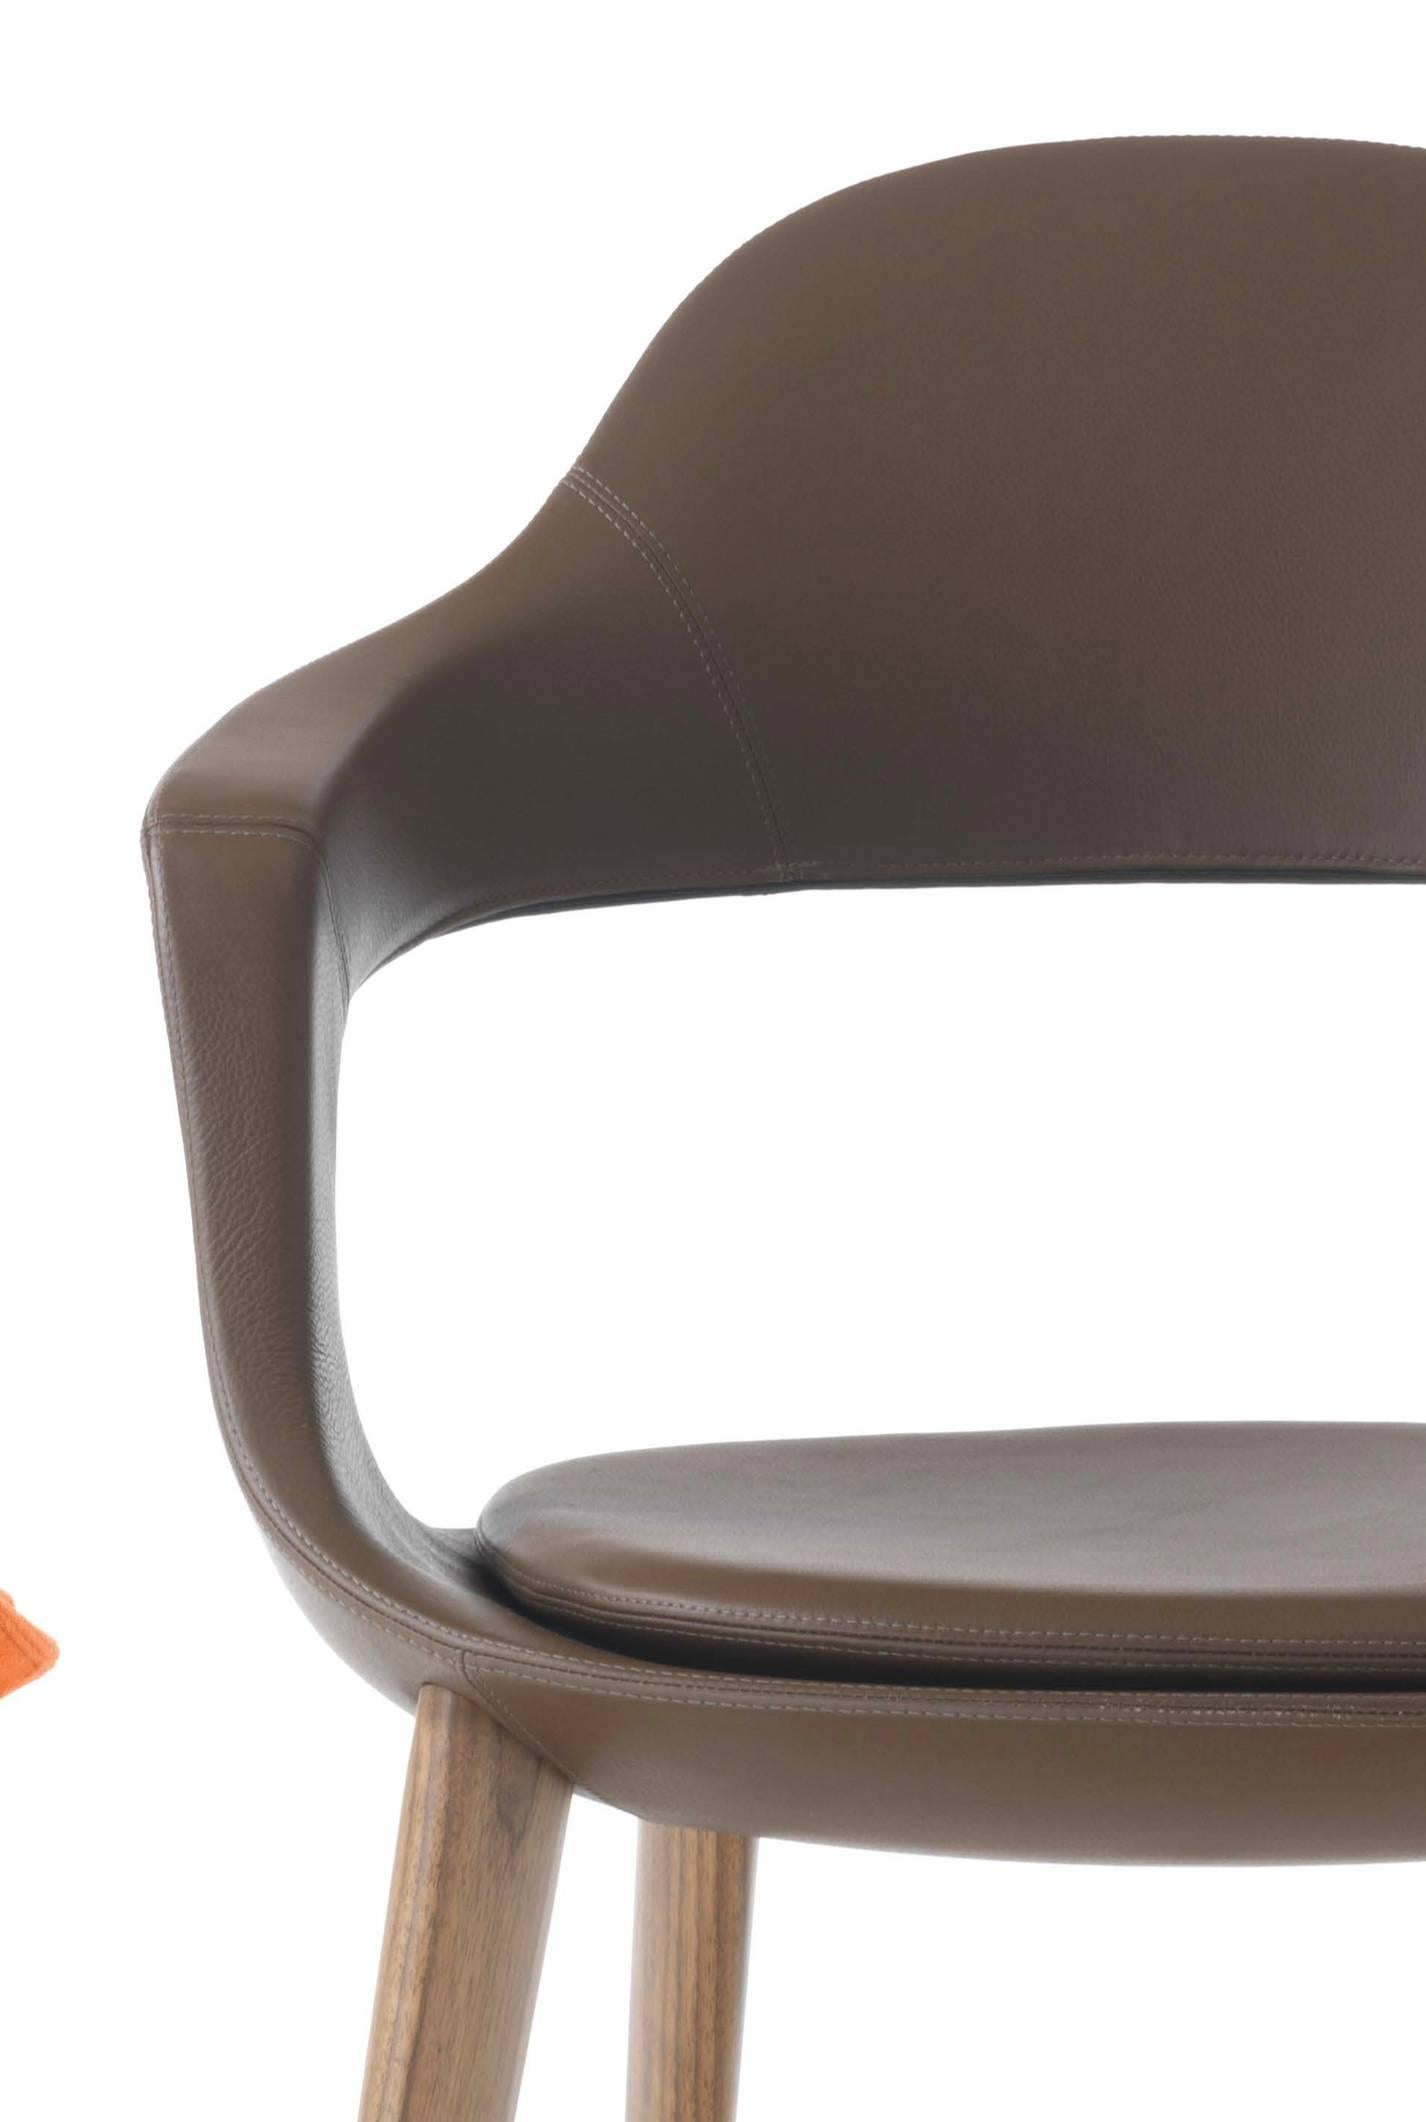 Modern Italian Leather Dining Chairs With Wooden Legs, Hand Made In Italy  For Sale At 1stdibs